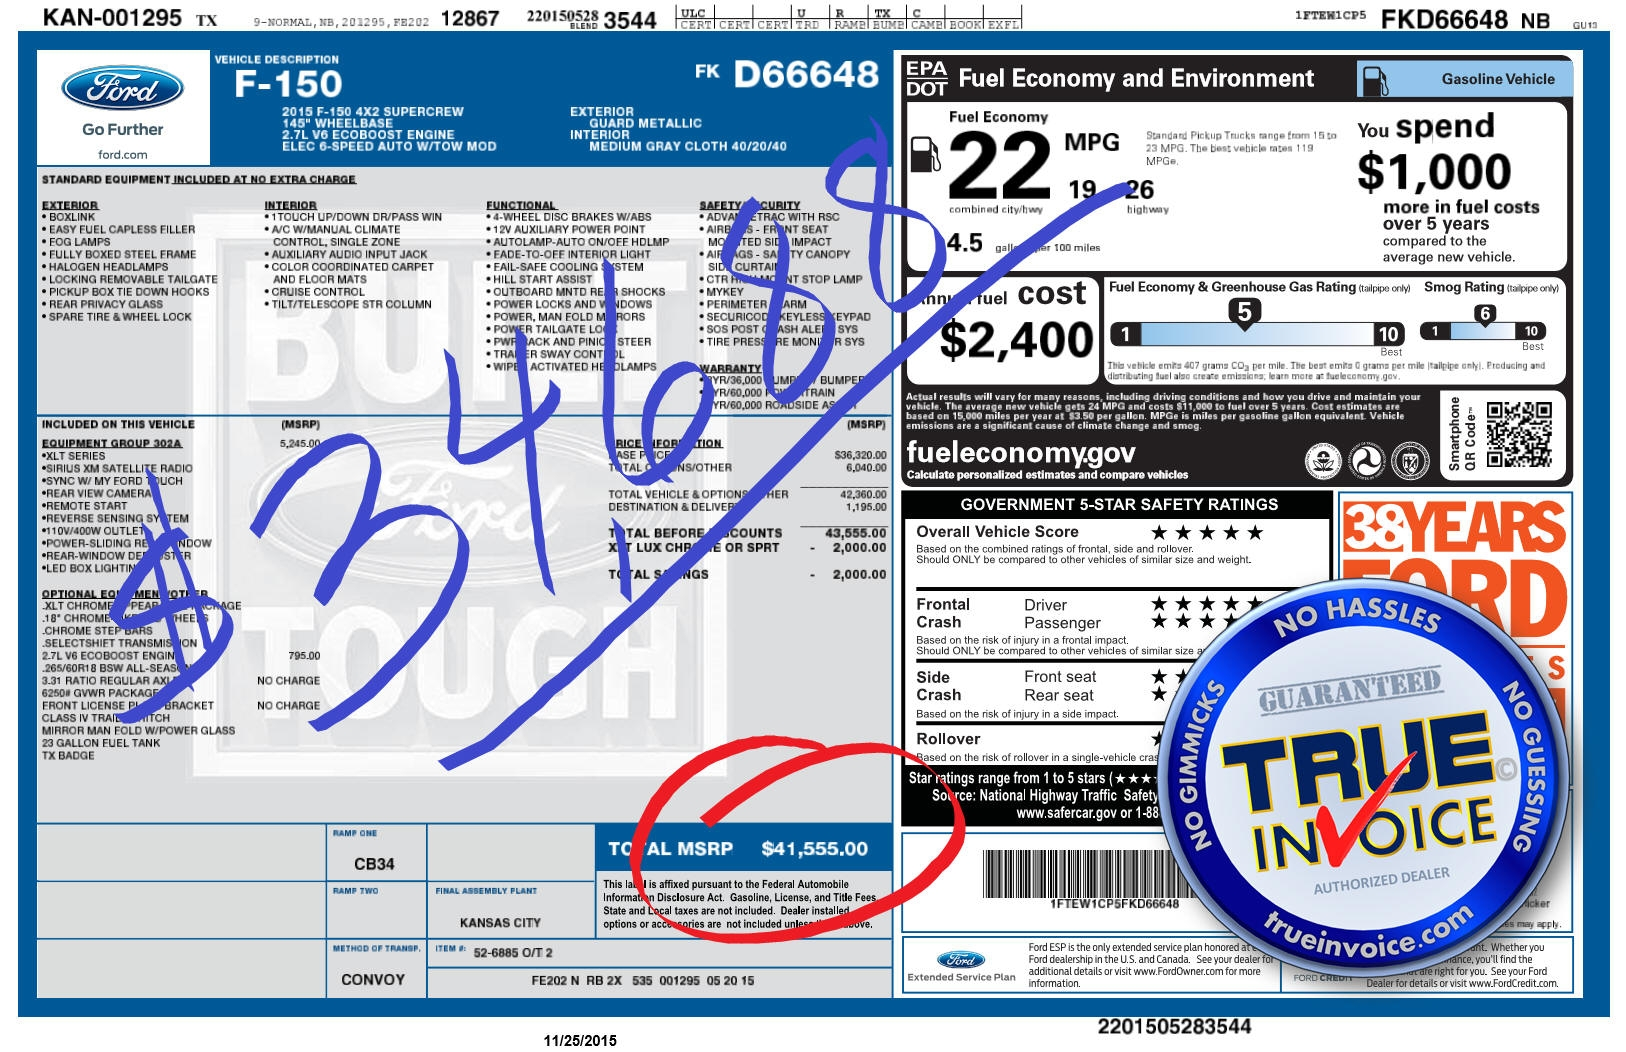 true invoice 2016 ford f150 vw invoice pricing